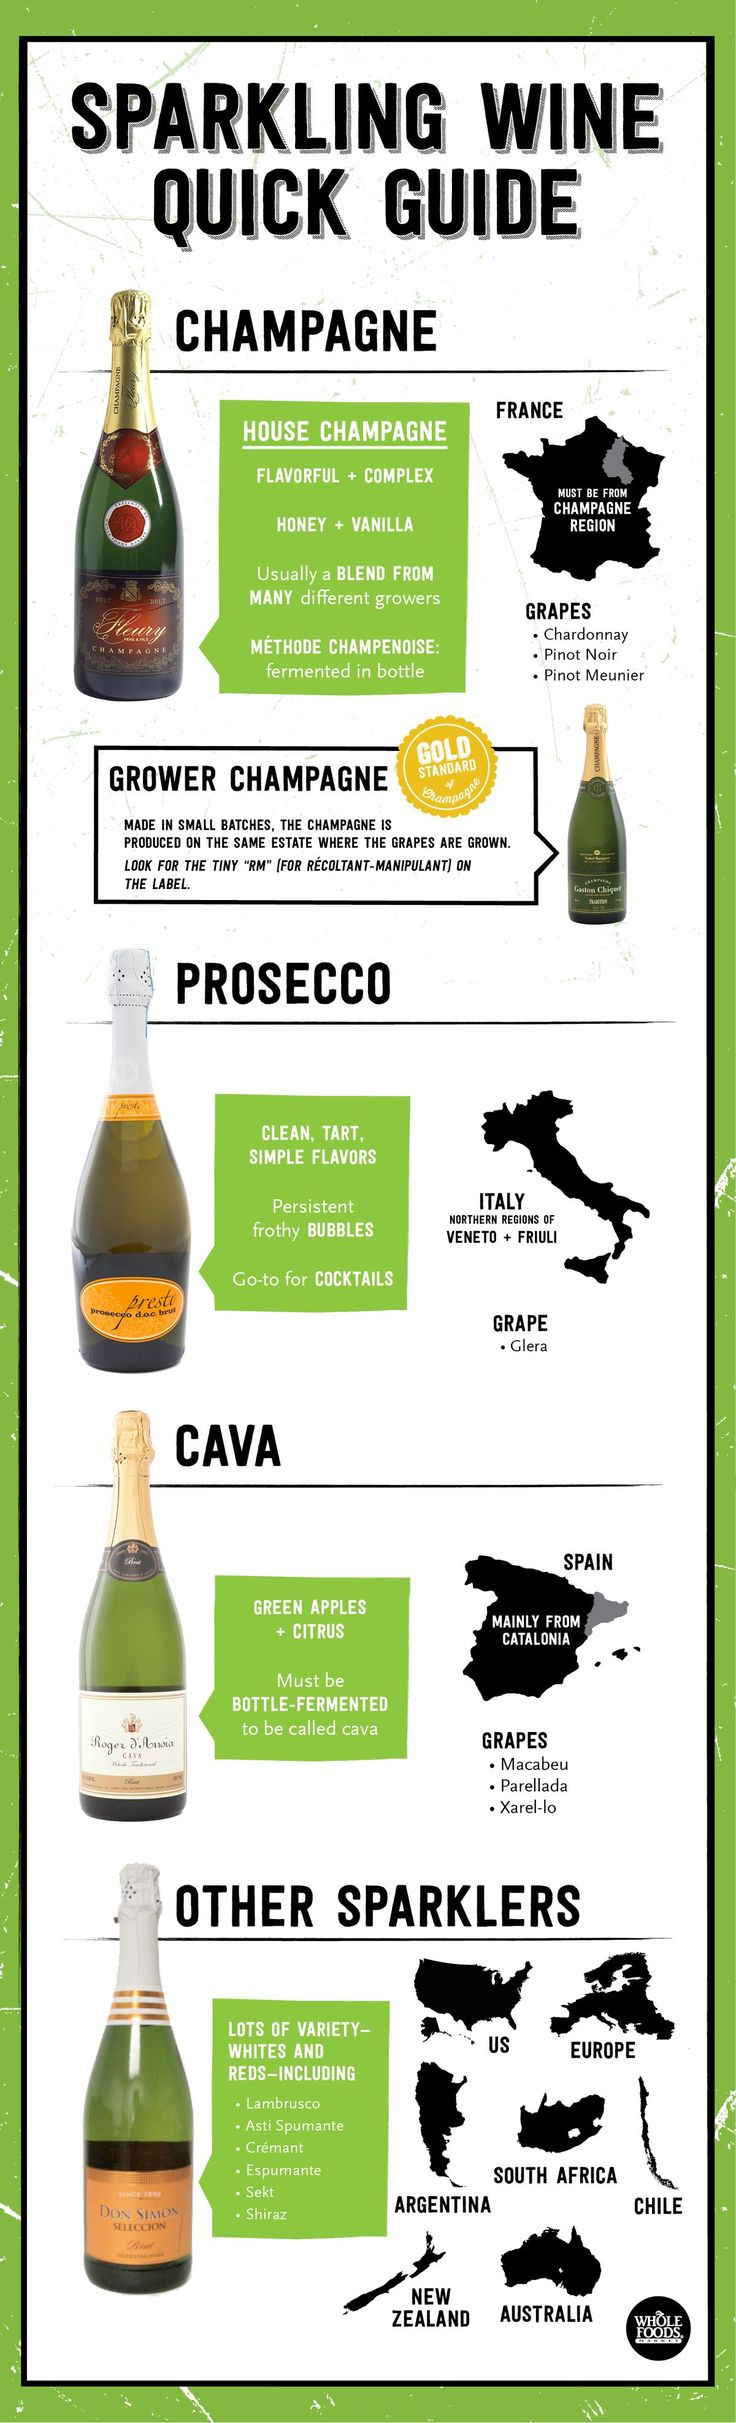 Quick Guide to Sparkling Wine for Valentine's Day